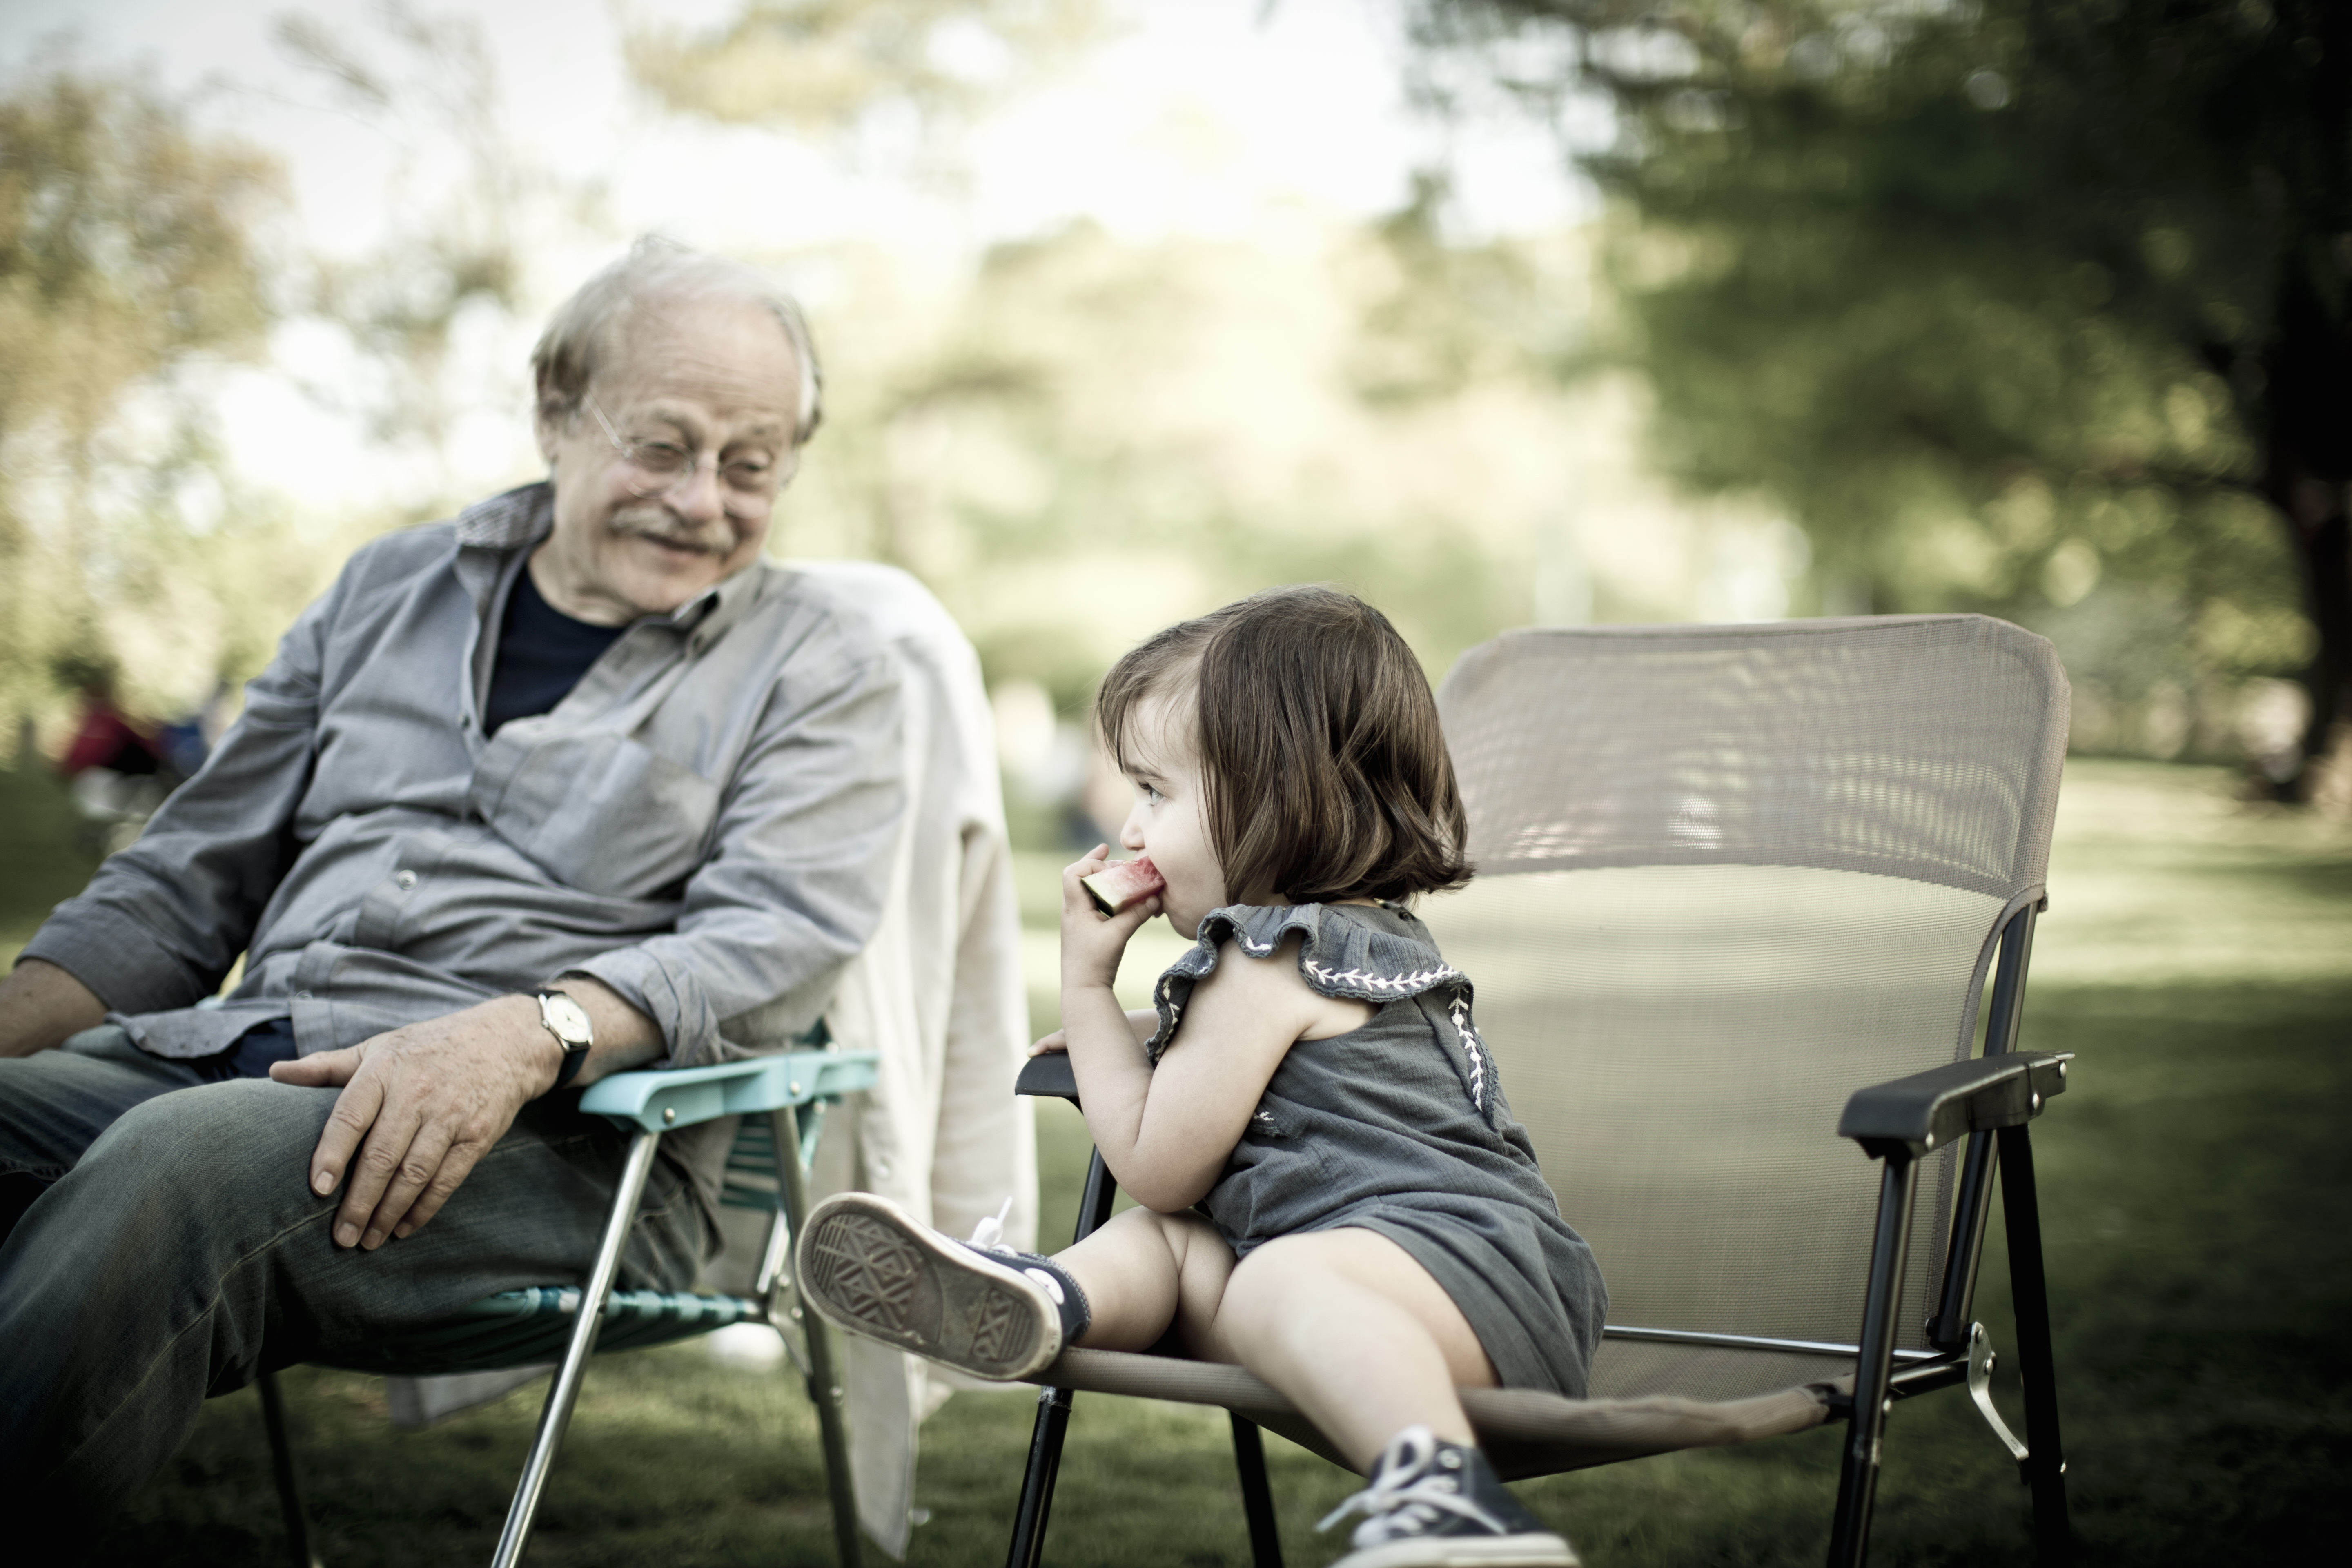 An elderly man sitting with a child at a park.